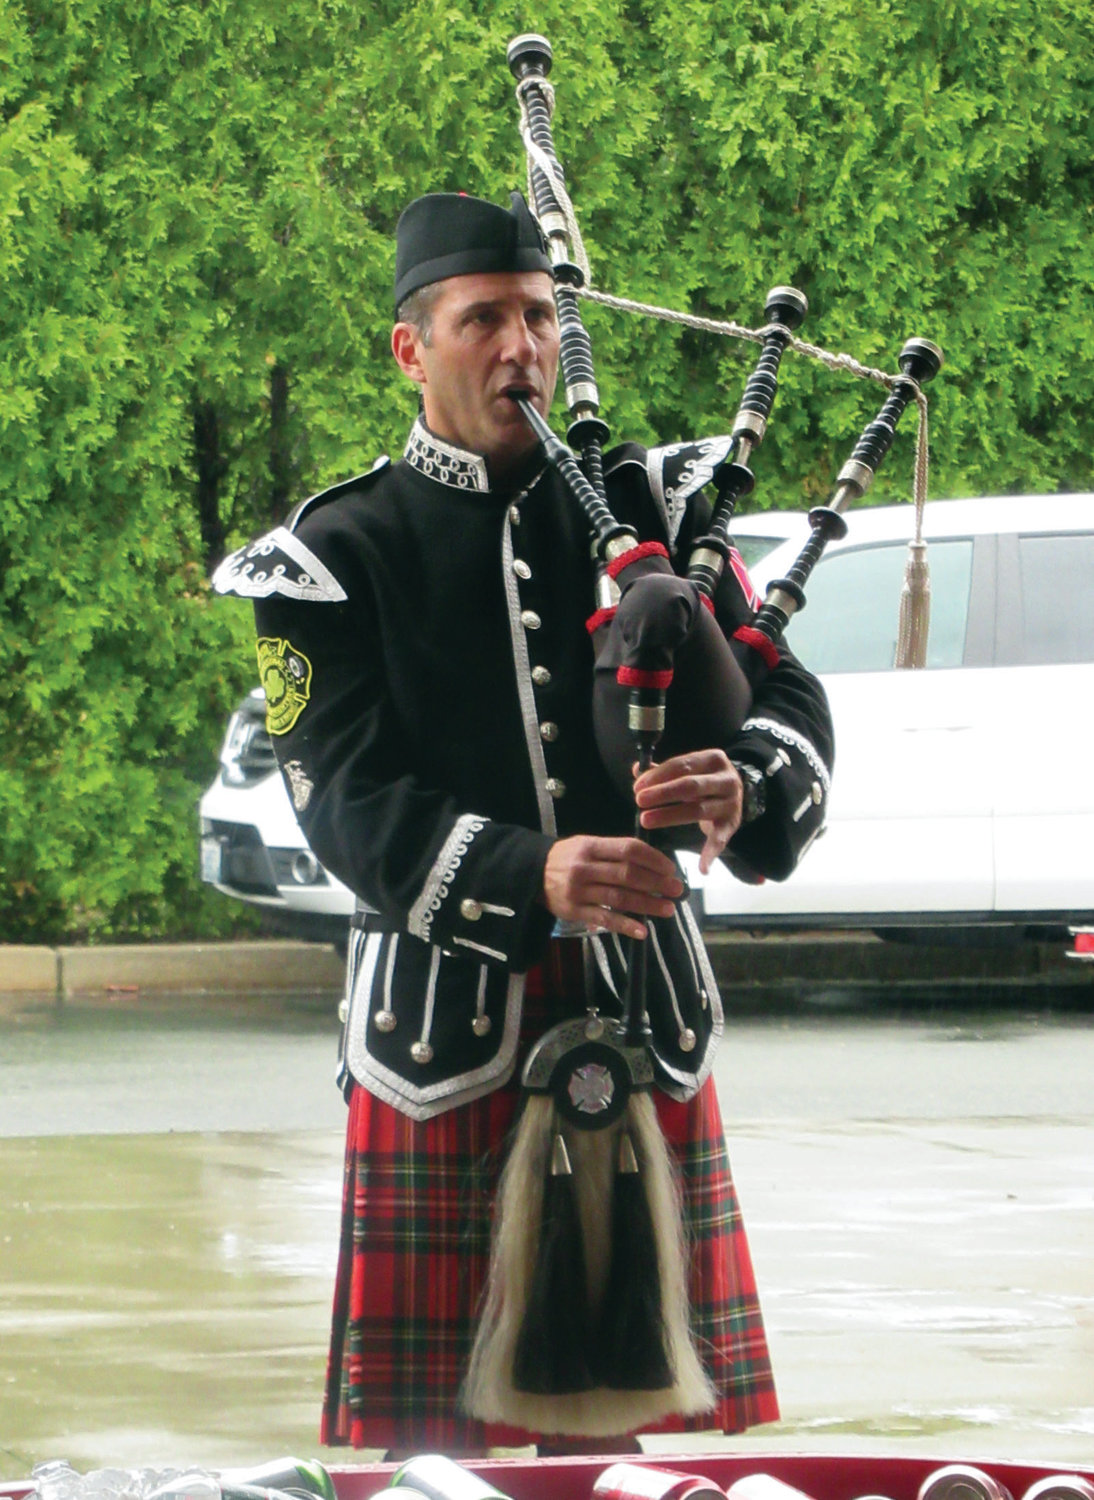 POLISHED PIPER: Retired Warwick Firefighter Carl Pecchia added to the impressive pomp and circumstance of Sunday's Firefighter Memorial Ceremony held inside Station 1 on Atwood Avenue.